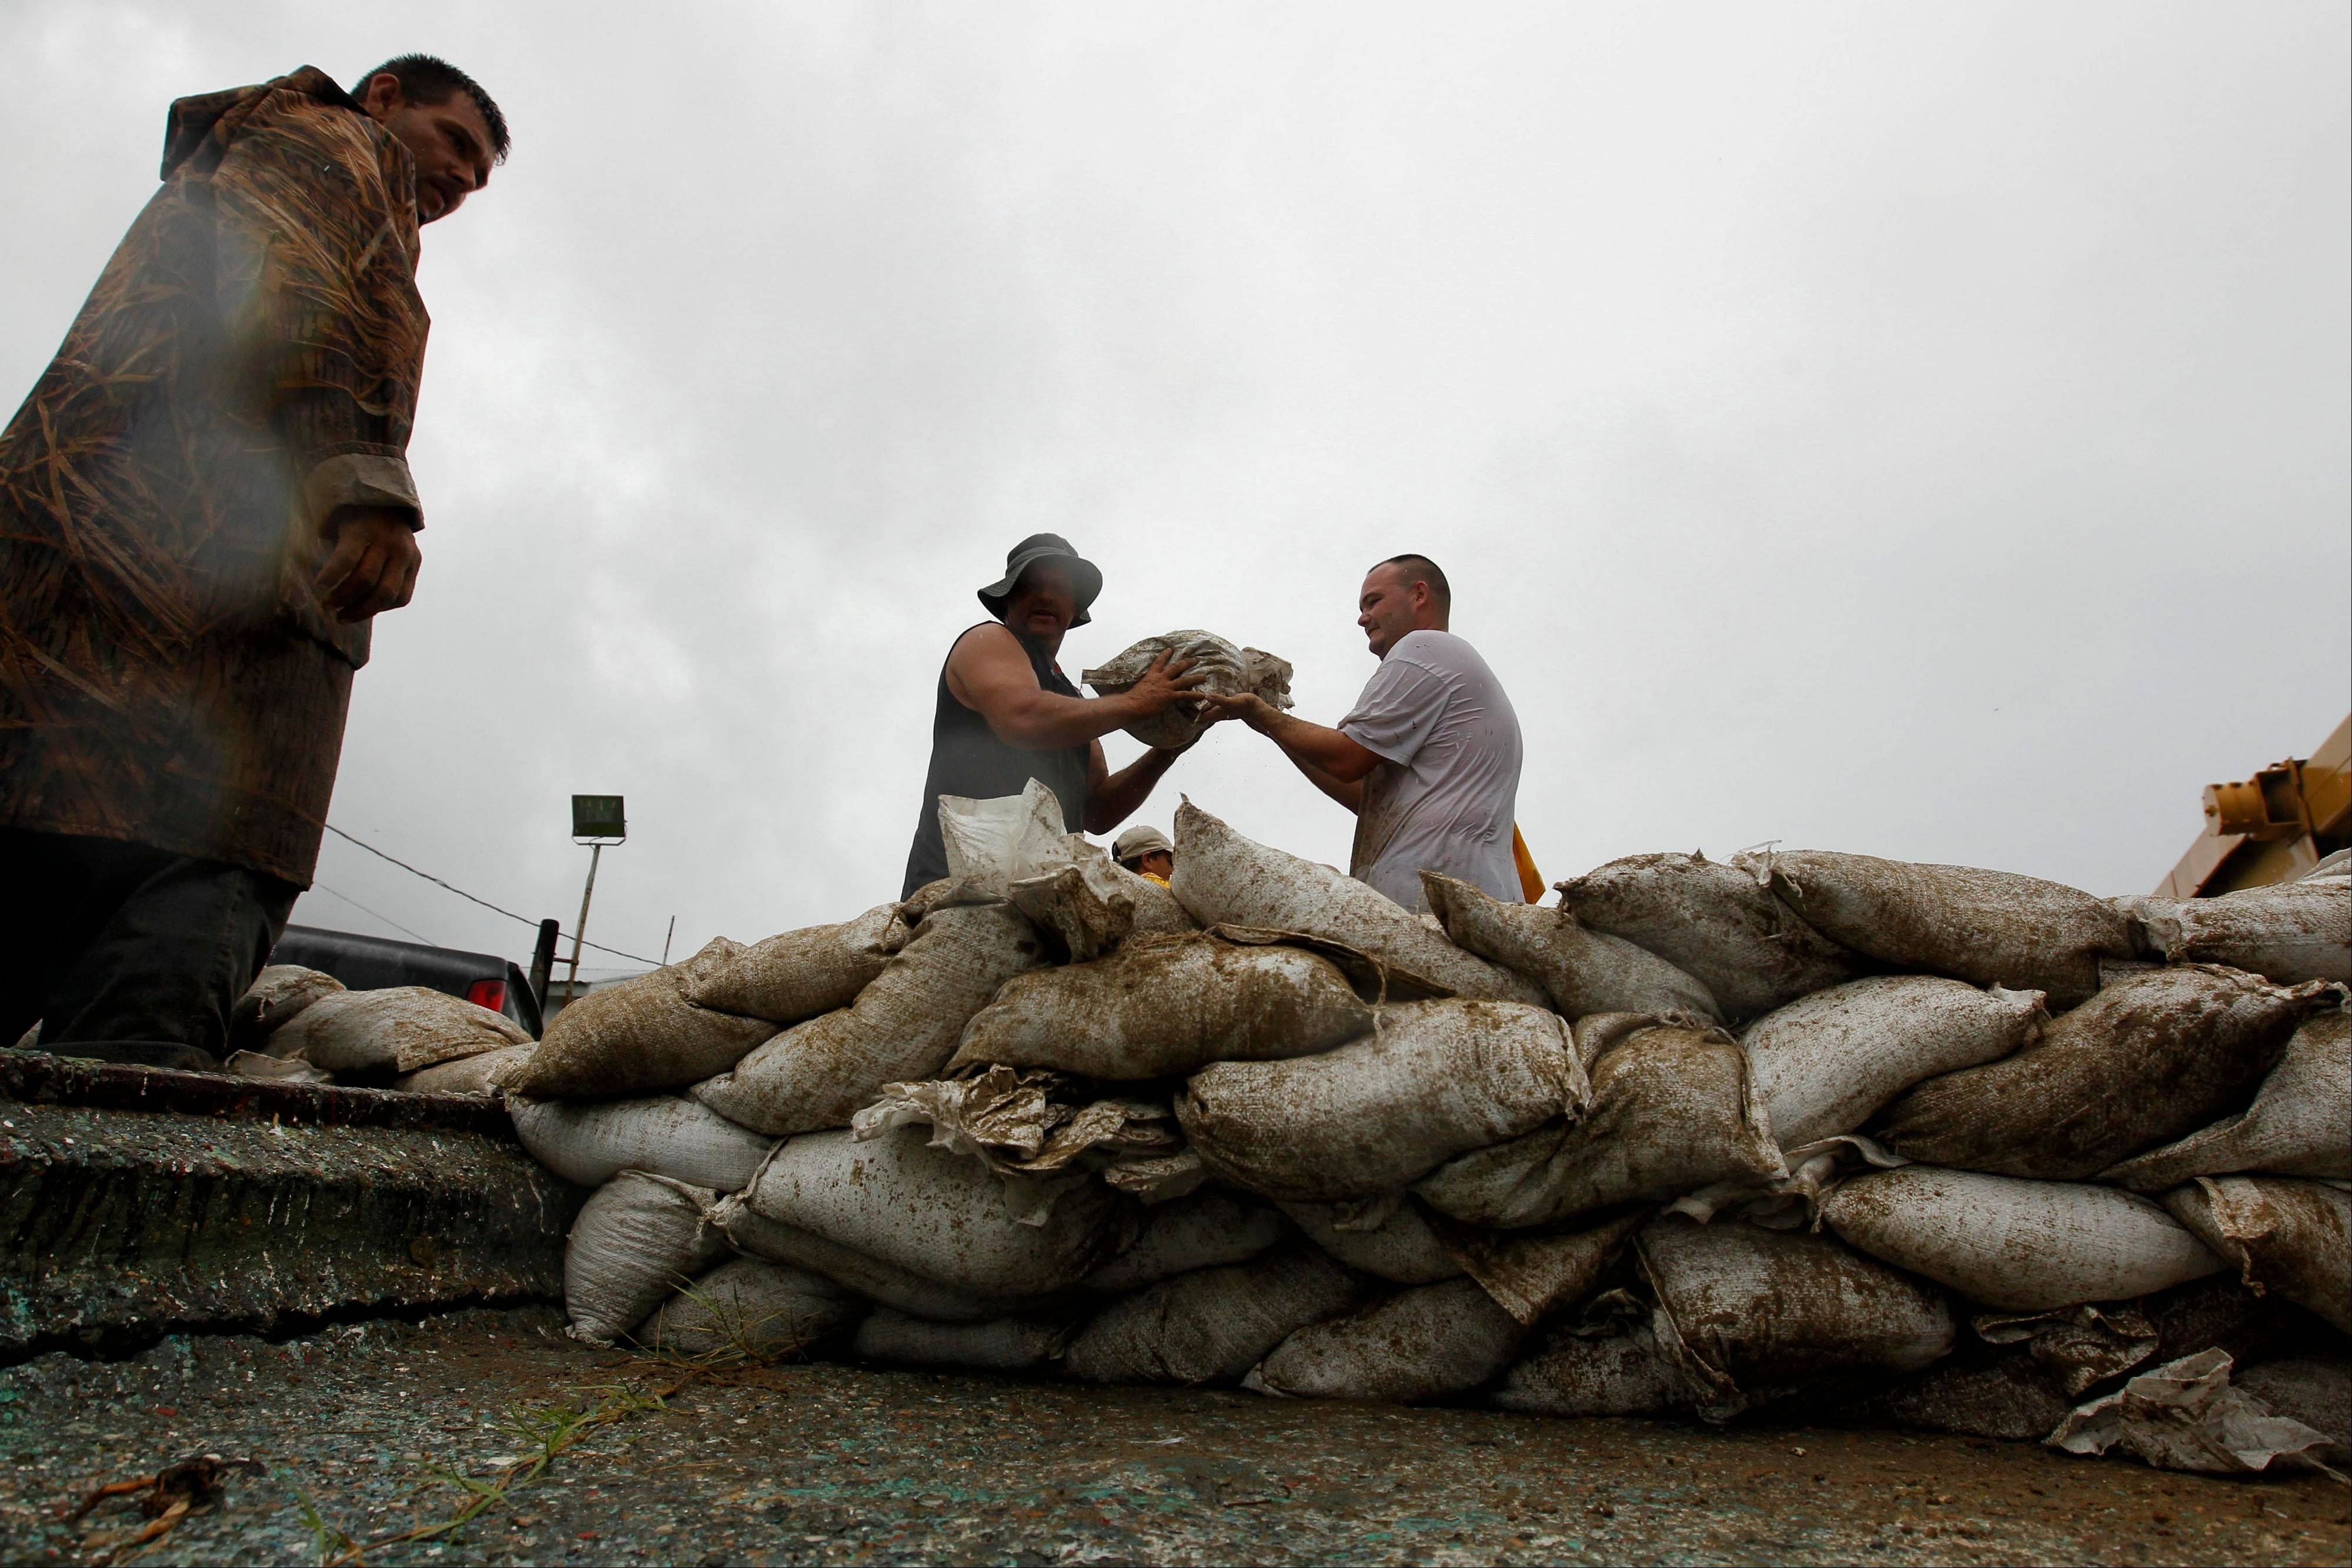 Residents help sandbag a seafood shed behind the home of resident Kraemer Lloyd, in preparation for encroaching Tropical Storm Lee, in the town of Jean Lafitte, La., Friday. Tropical Storm Lee formed in the waters off Louisiana on Friday, threatening a drenching along much of the Gulf Coast over the Labor Day weekend with up to 20 inches of rain in some spots.